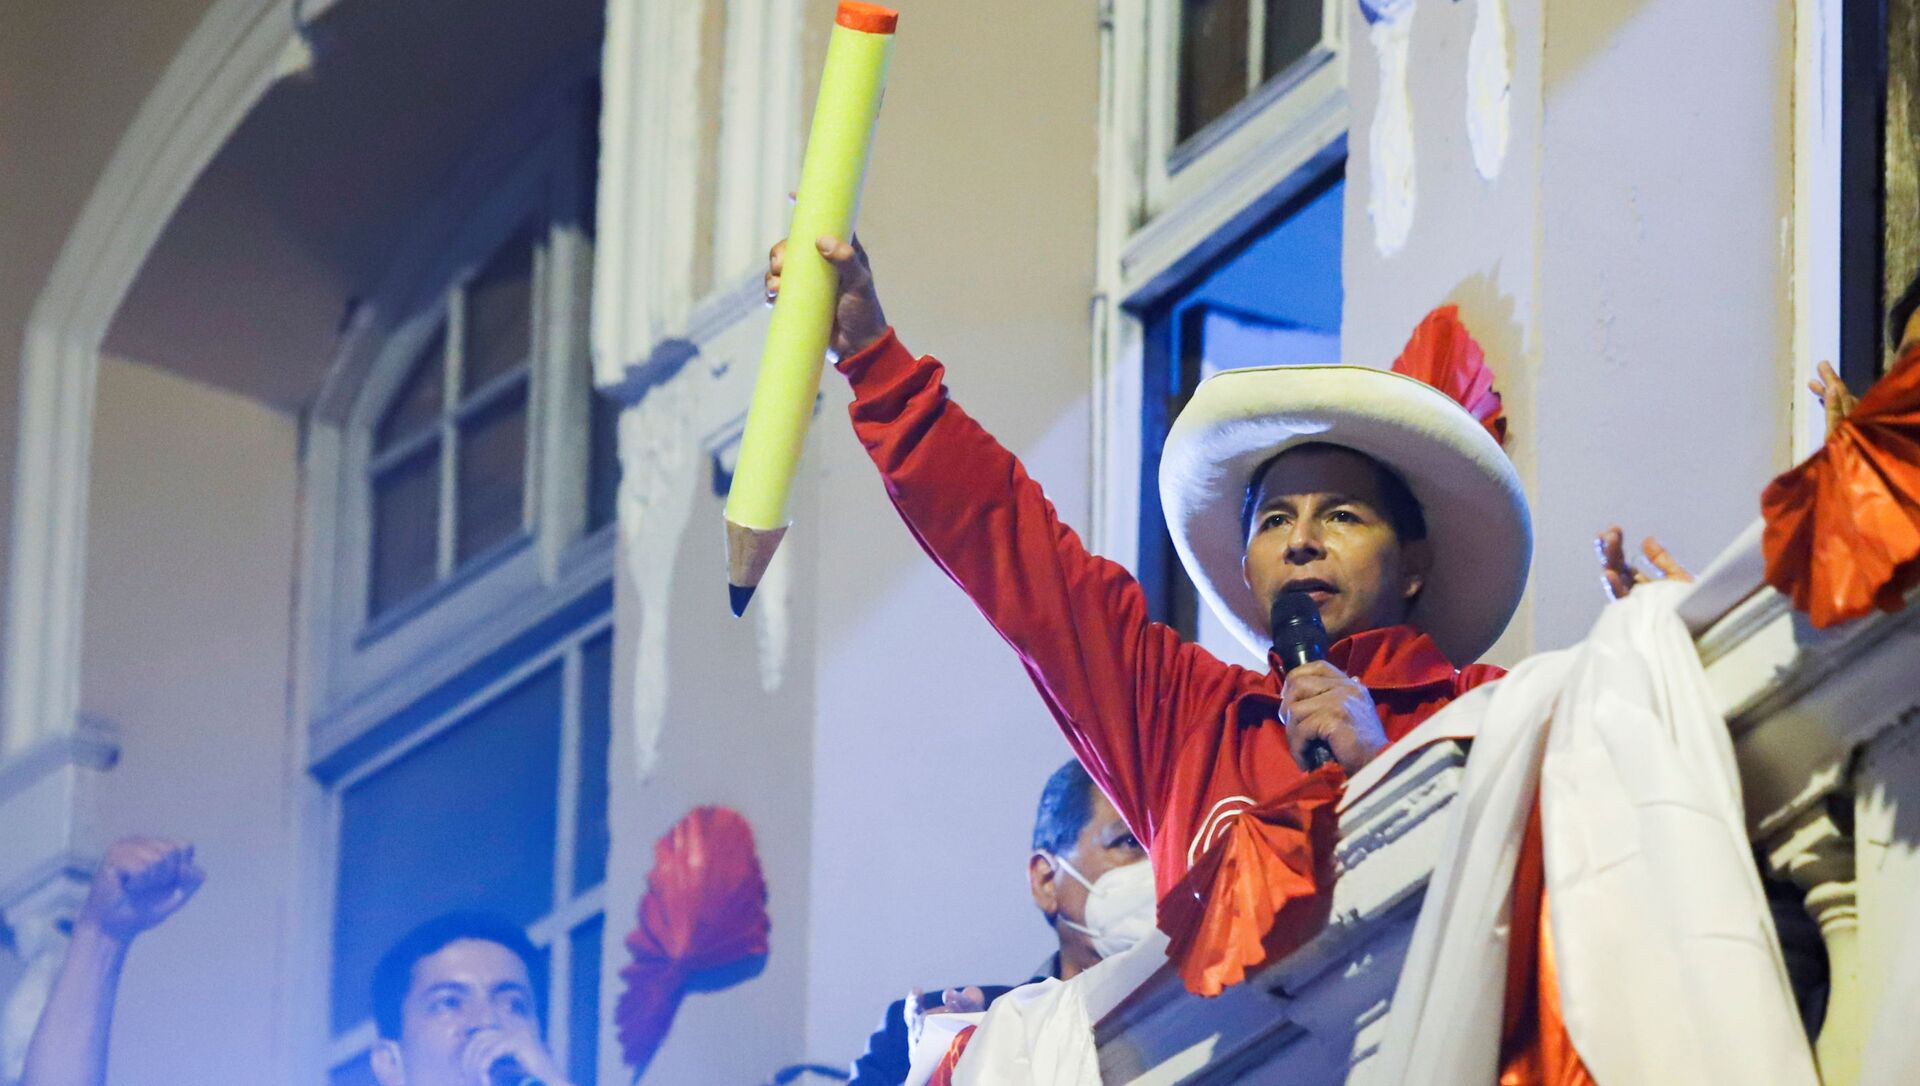 Peru's socialist presidential candidate Pedro Castillo addresses supporters at a final campaign event before a run-off election against right-wing candidate Keiko Fujimori on June 6, in Lima, Peru June 3, 2021. - Sputnik International, 1920, 18.06.2021